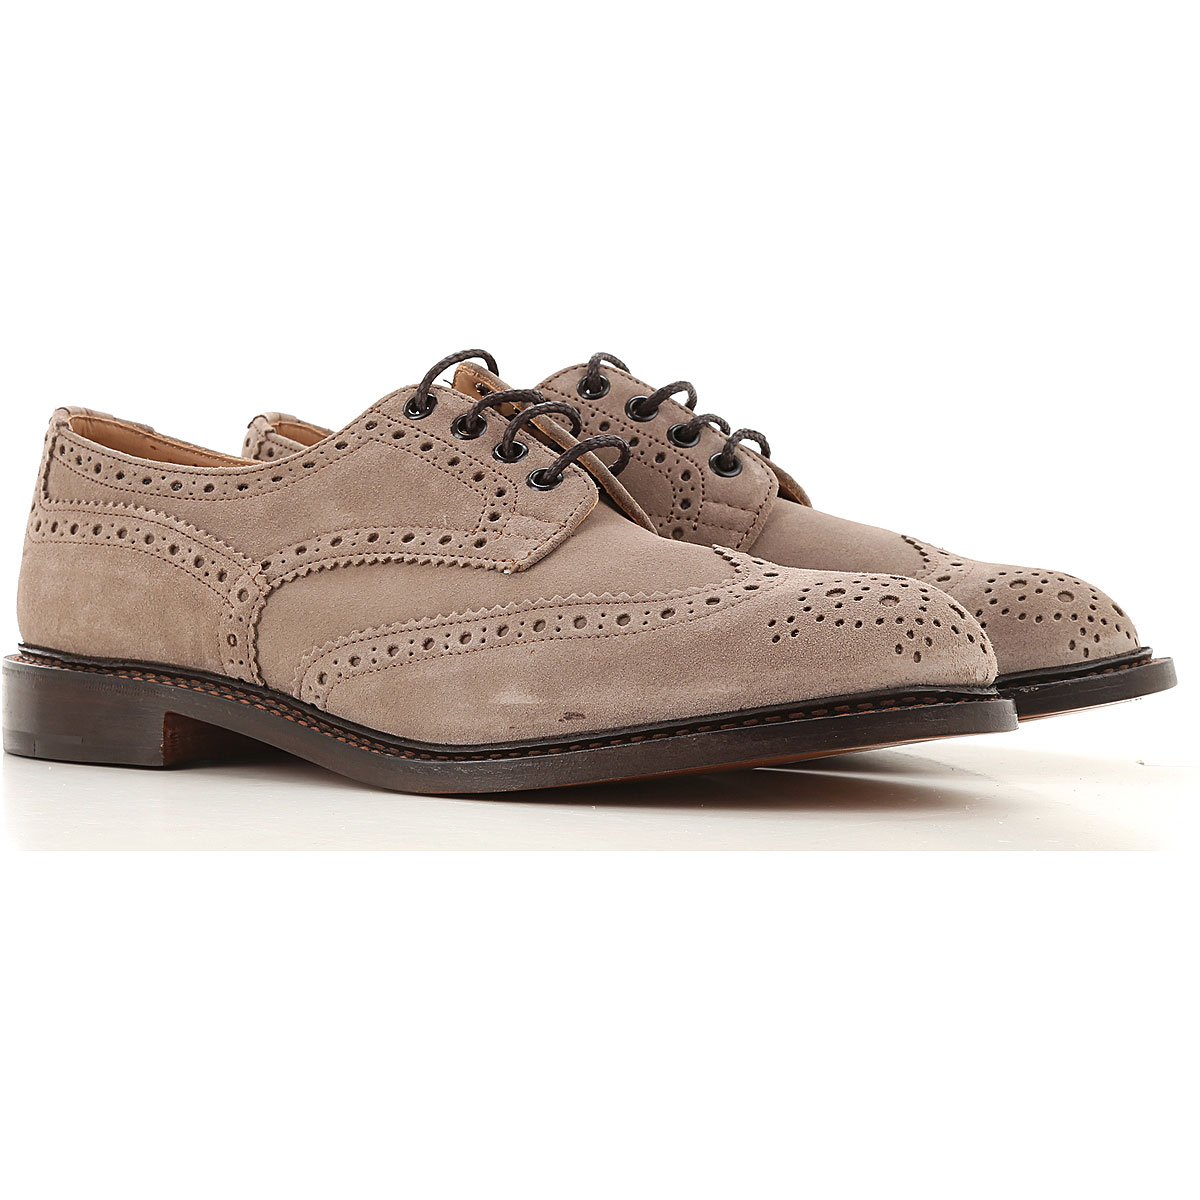 Trickers Lace Up Shoes for Men Oxfords, Derbies and Brogues On Sale, Taupe, suede, 2019, 10 11 8 9